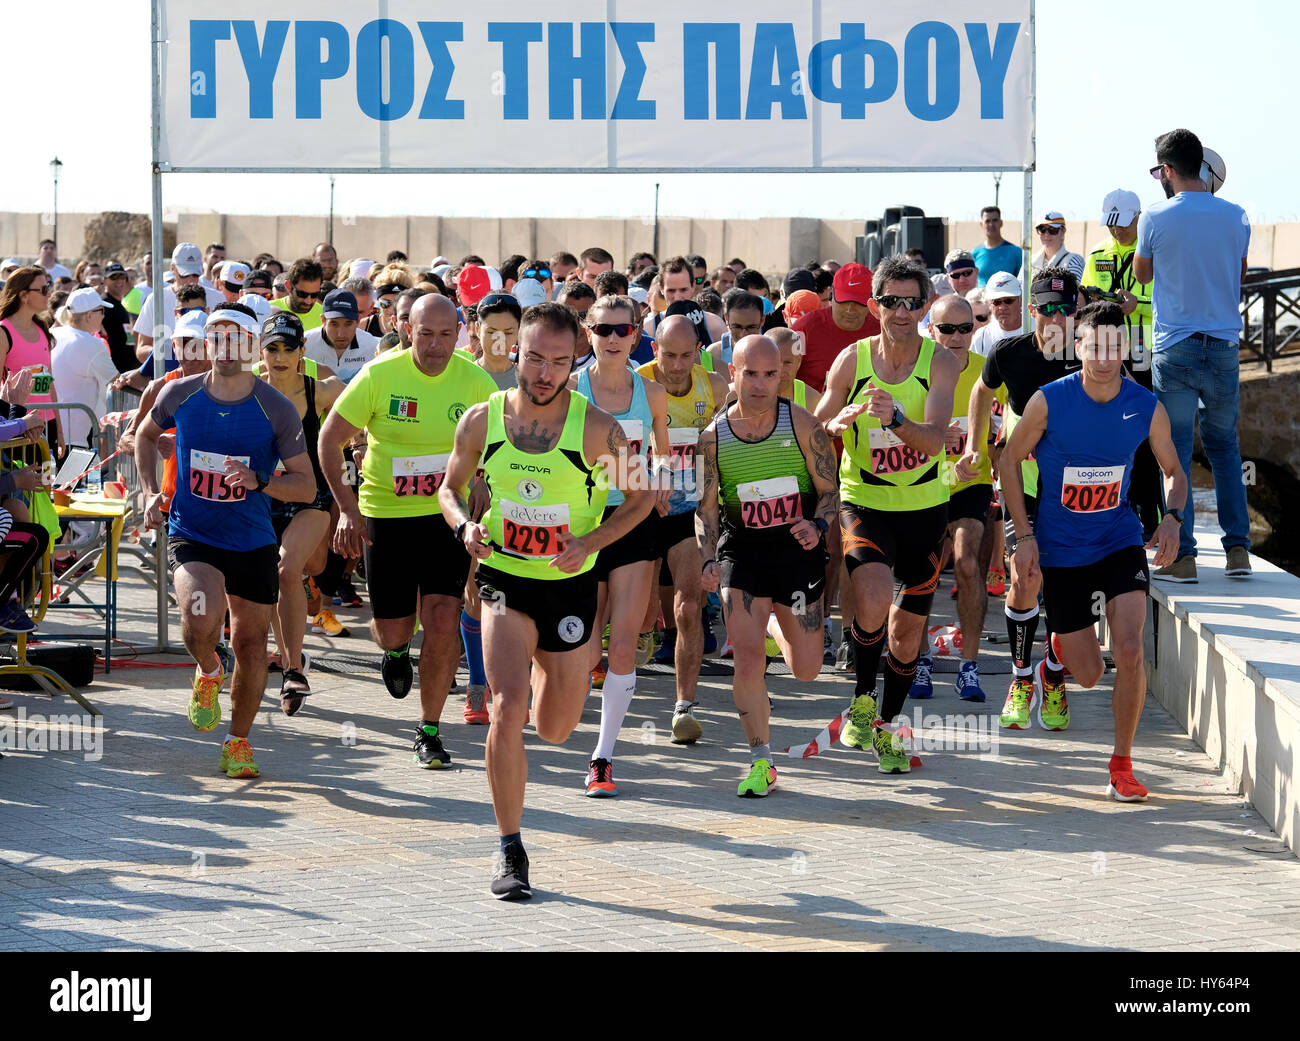 Athletes leave the start of the 10k road race in front of Paphos Castle, Paphos Harbour, Cyprus. - Stock Image